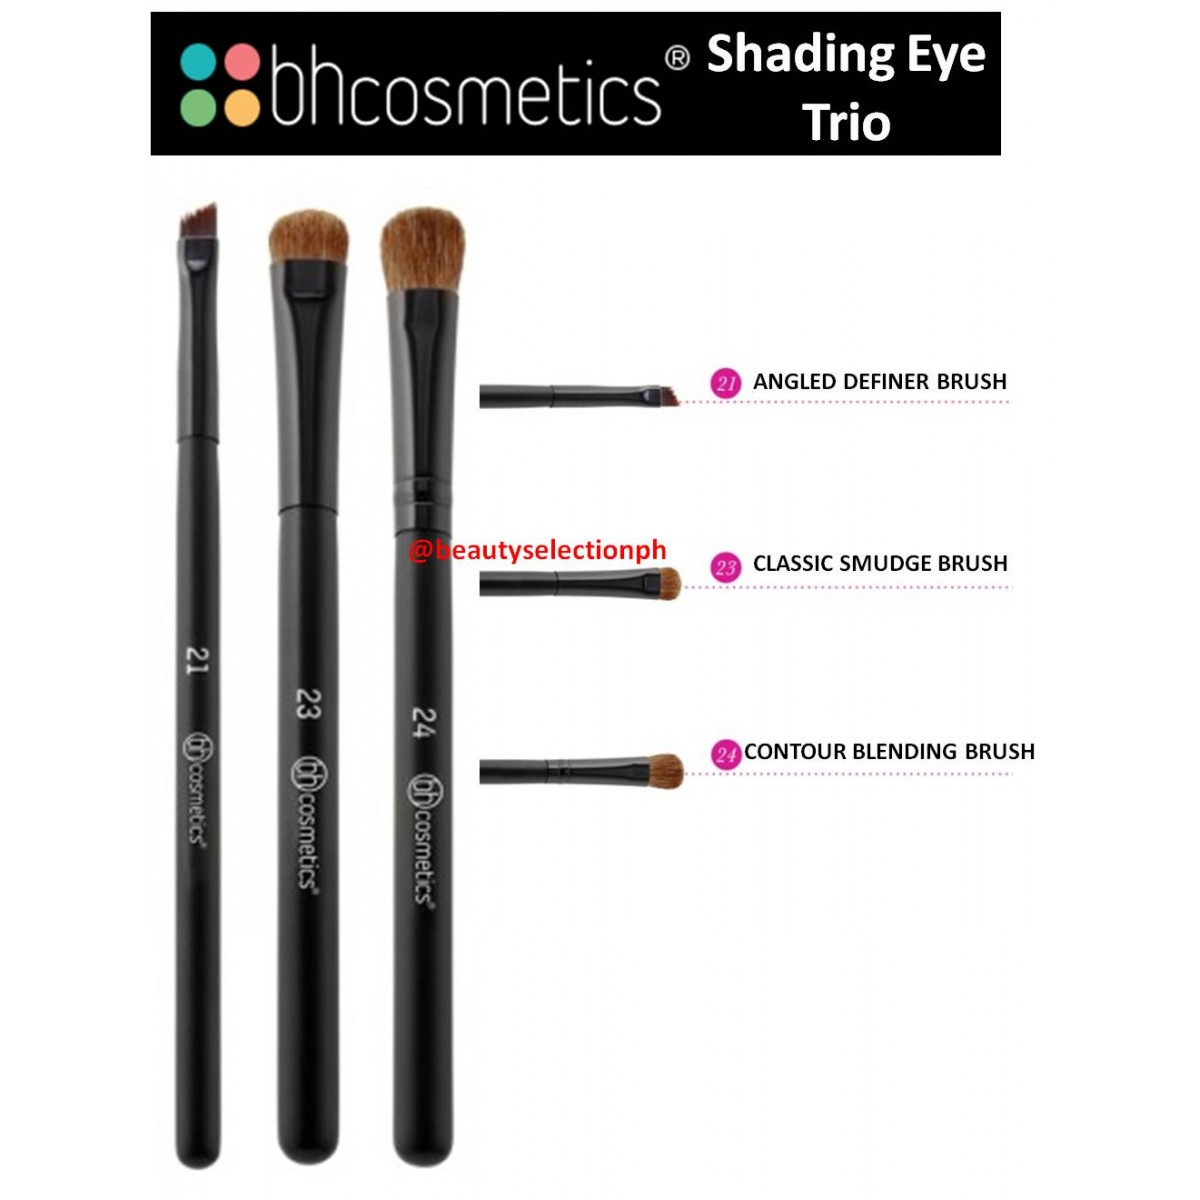 Bh Cosmetics Shading Eye Trio